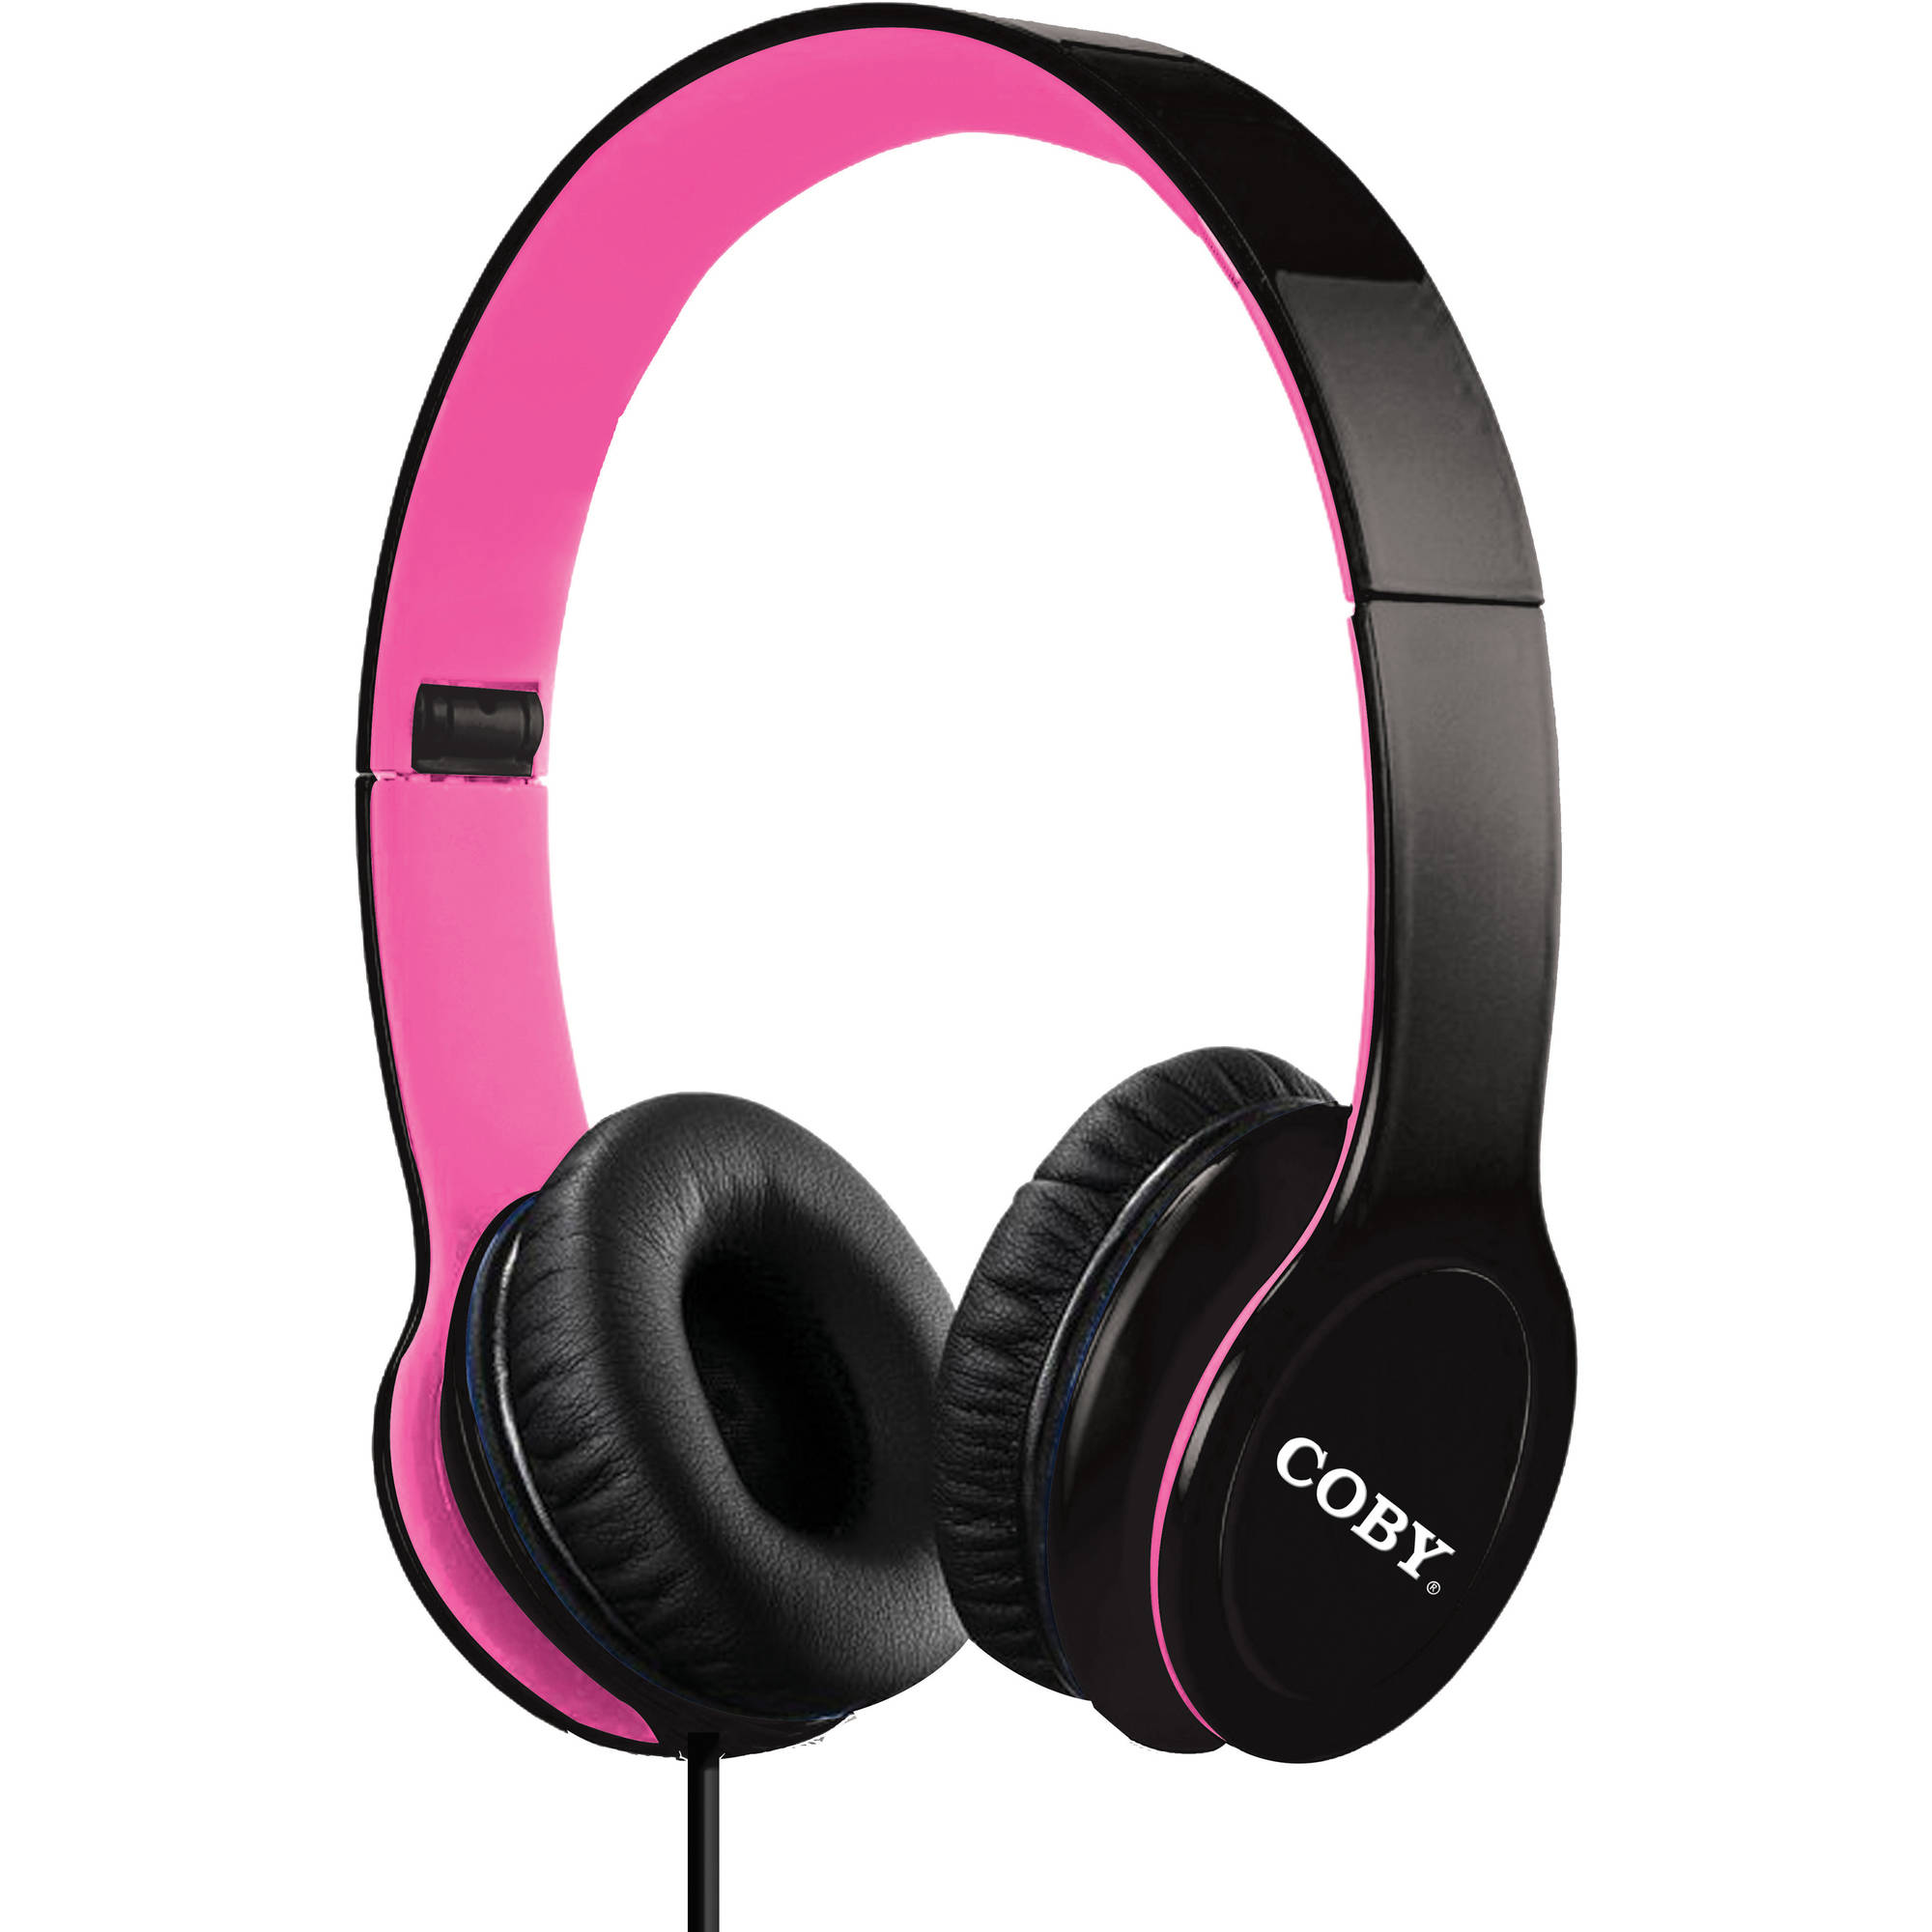 Coby Folding Stereo Headphones